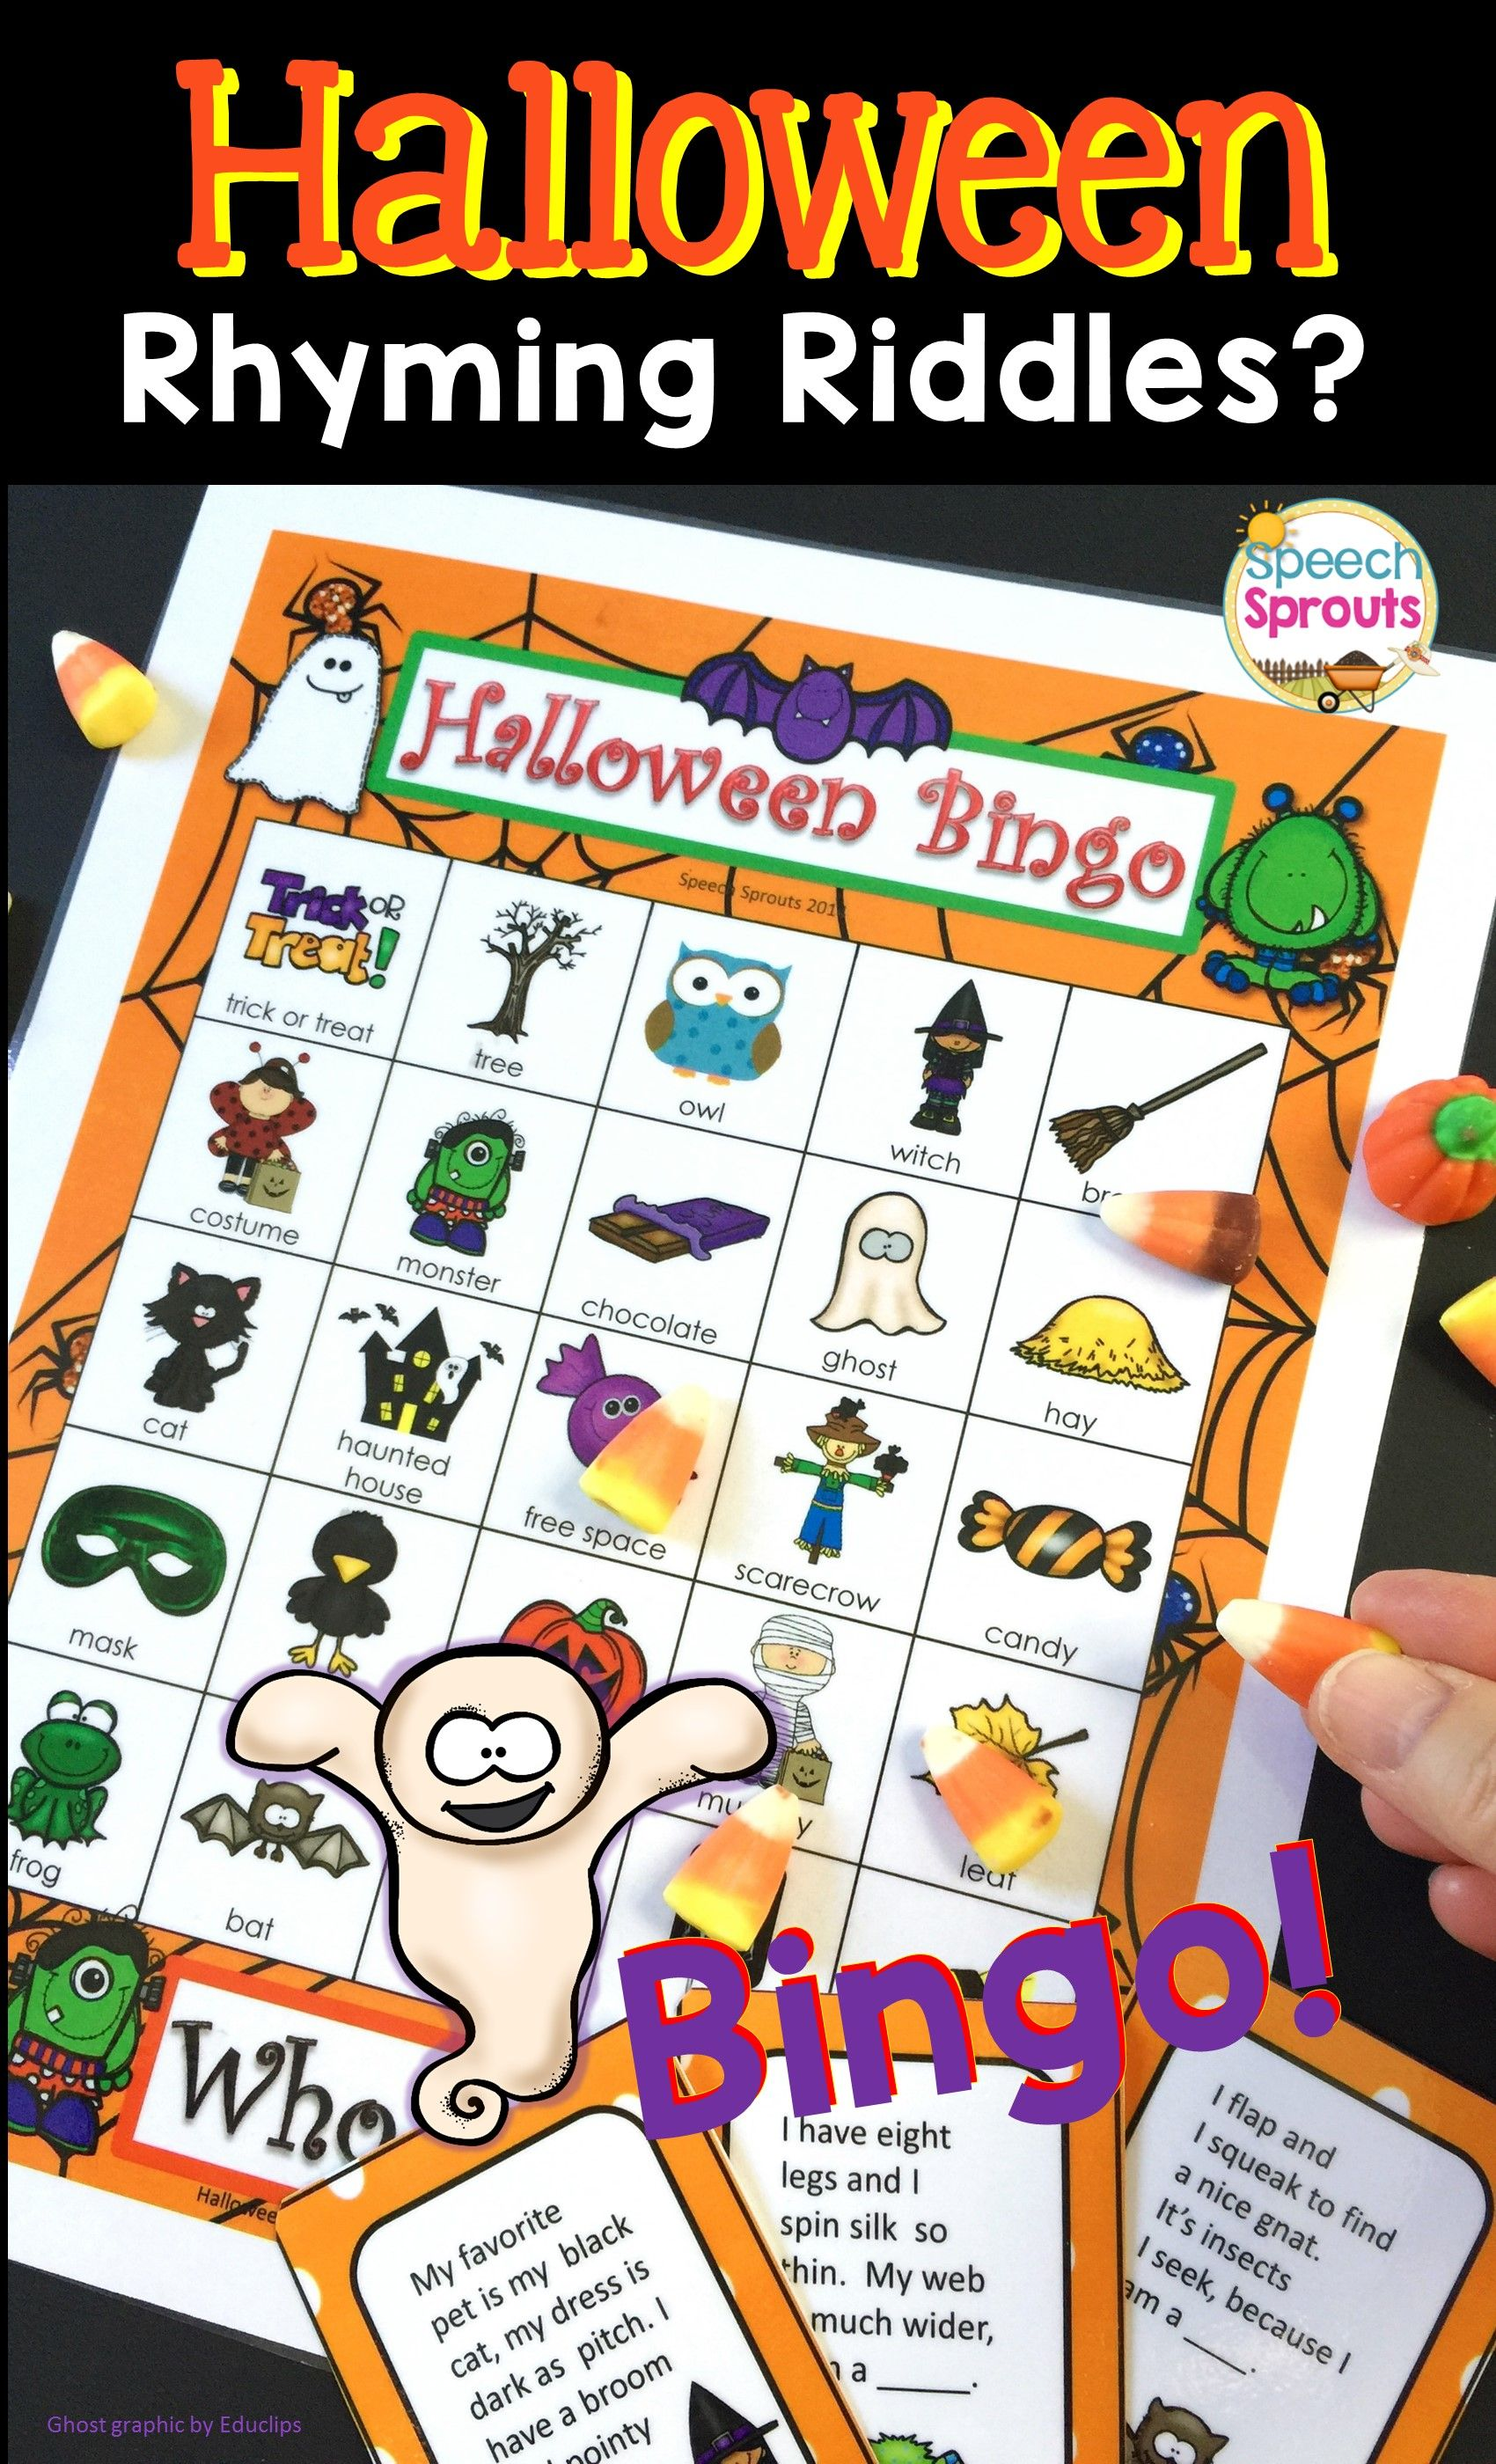 halloween bingo riddles game - Halloween Games For Groups